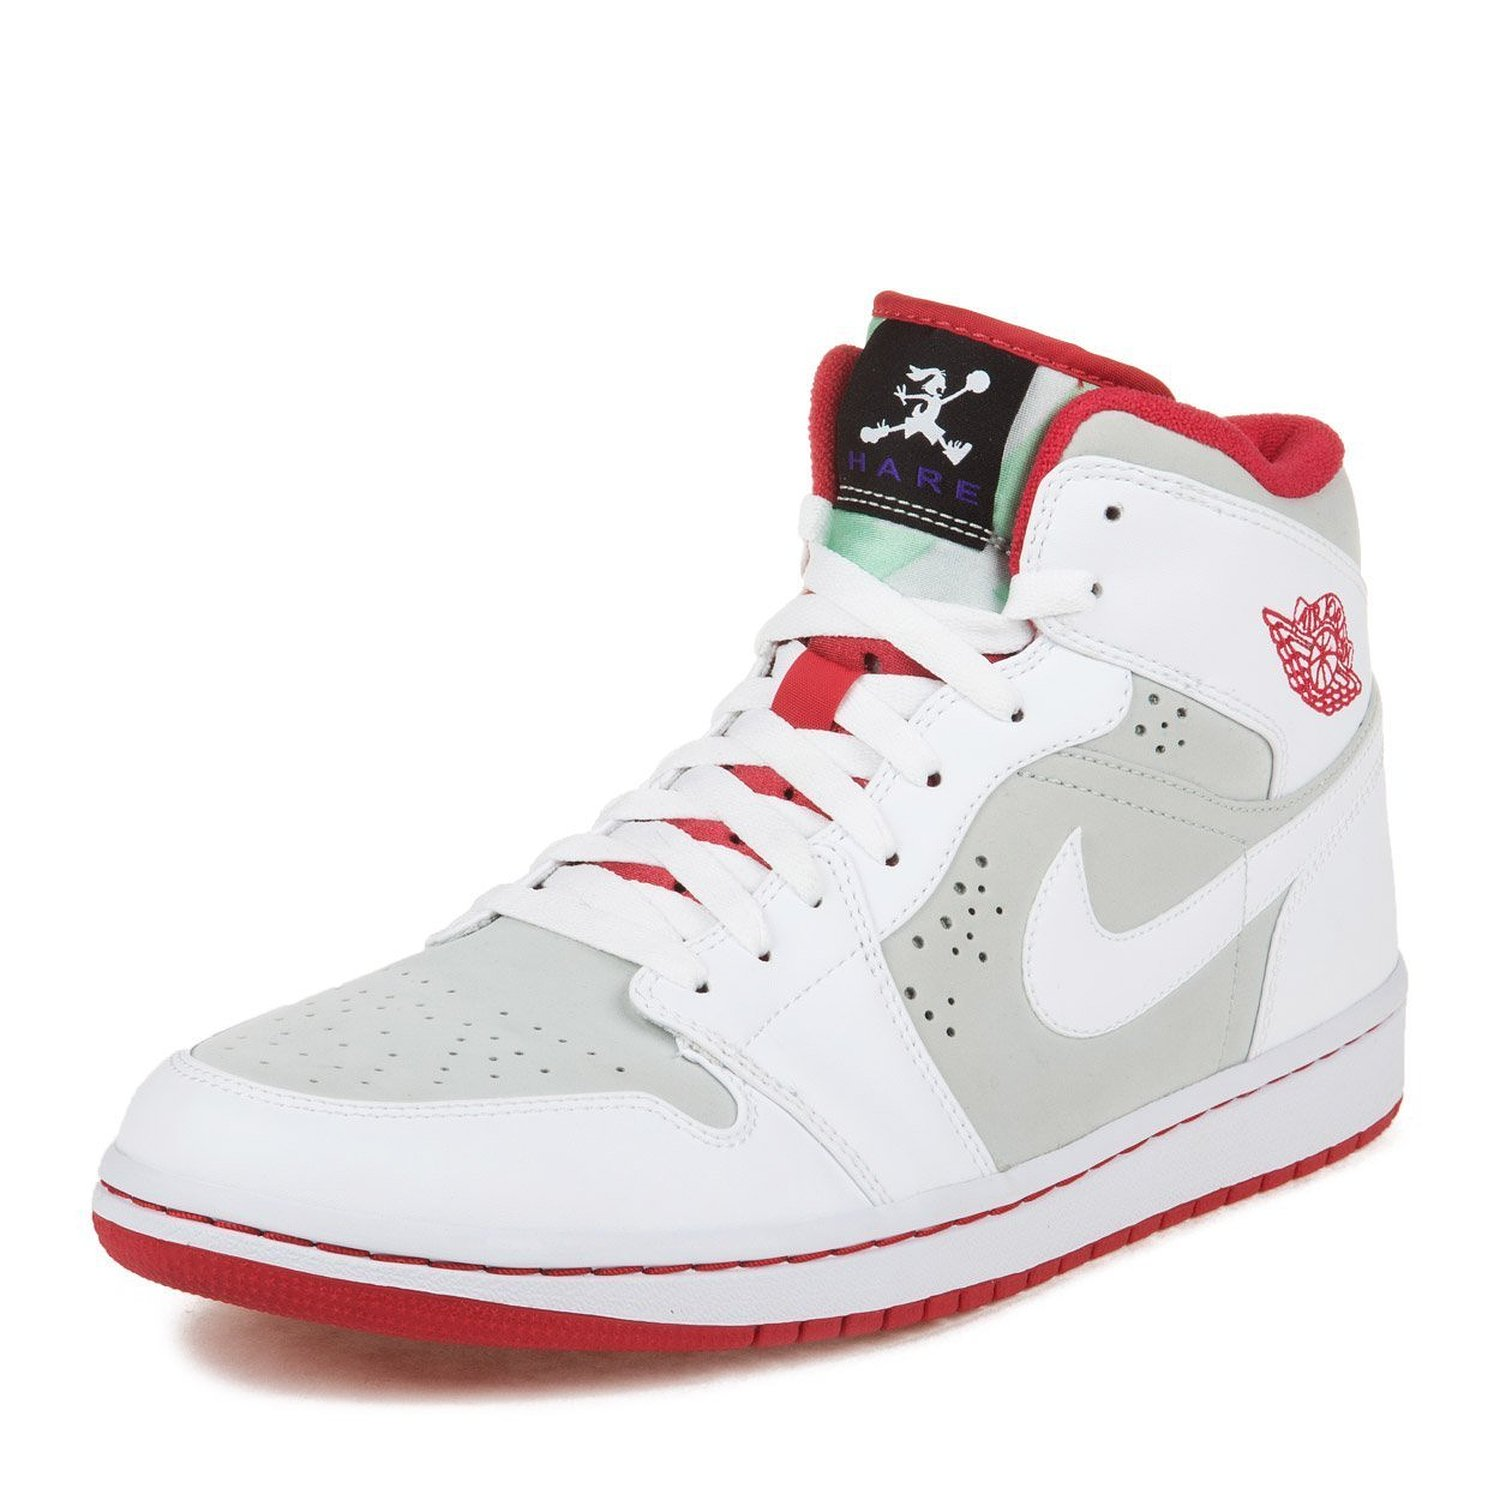 Nike Mens Air Jordan 1 Retro Hare Jordan Light Silver/White-True Red Leather Basketball Shoes Size 11